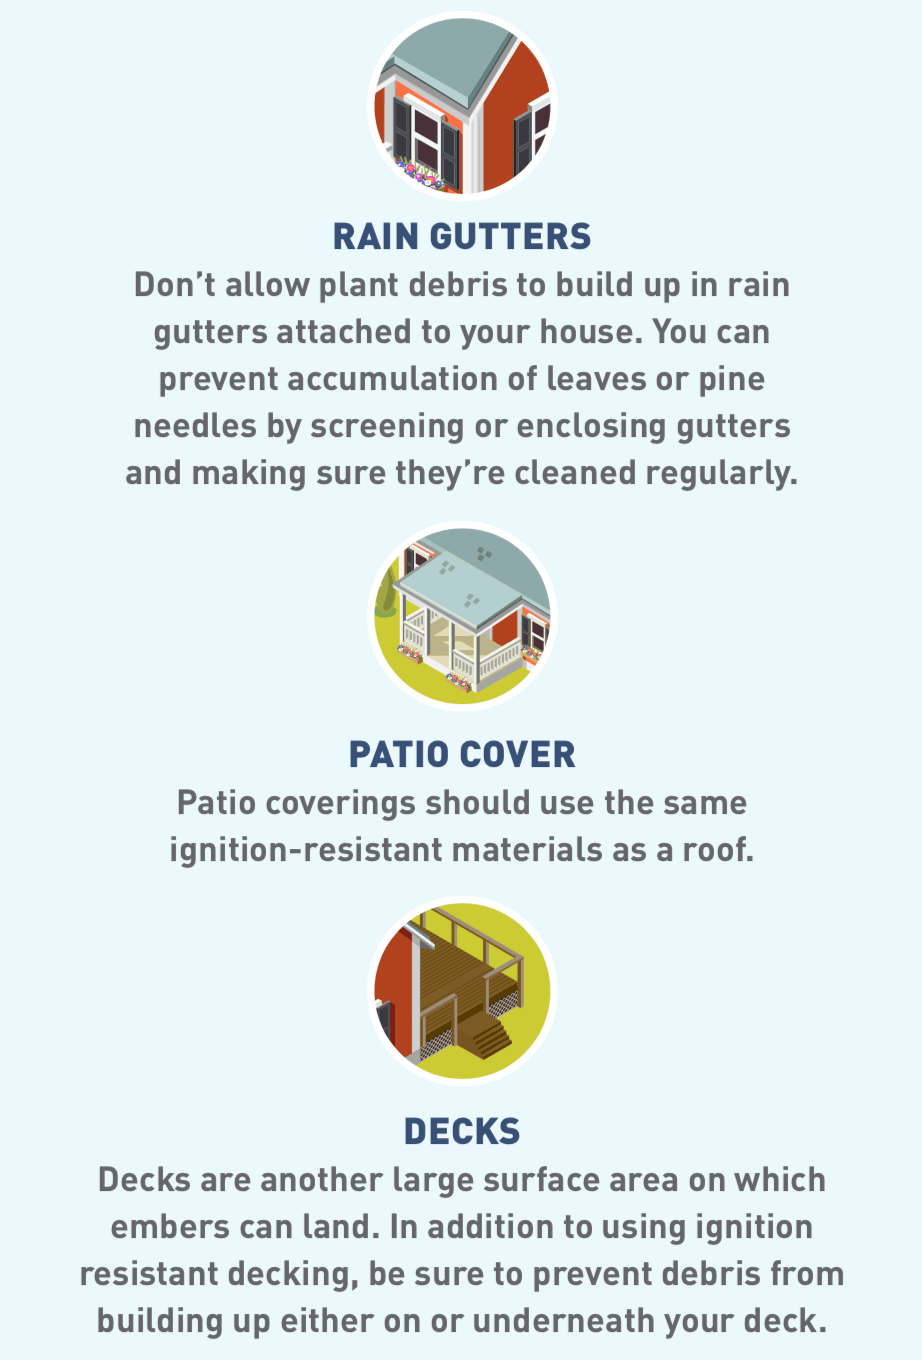 Illustrated icon of rain gutters, icon of a patio cover, and icon of a deck.